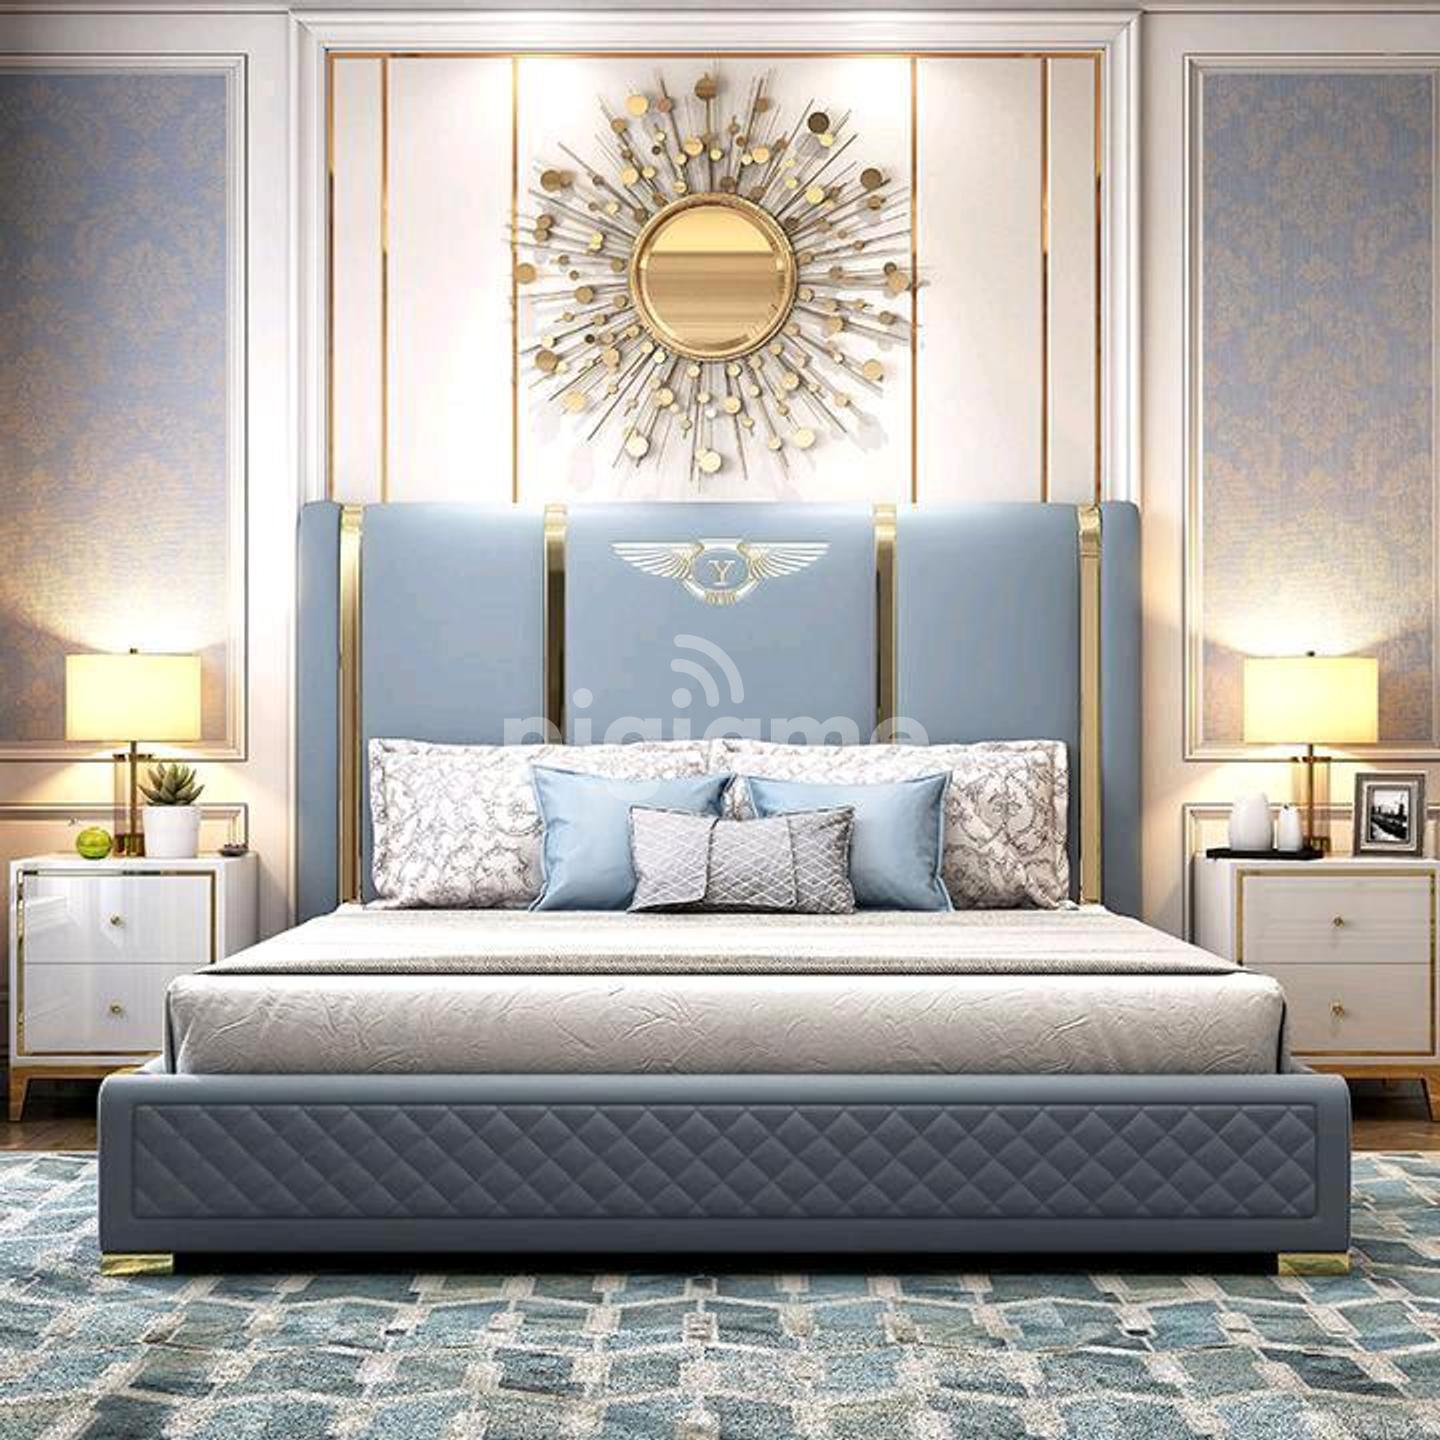 Modern King Size Beds Beds For Sale In Nairobi Kenya Modern Bed Designs In Kenya In Nairobi Pigiame